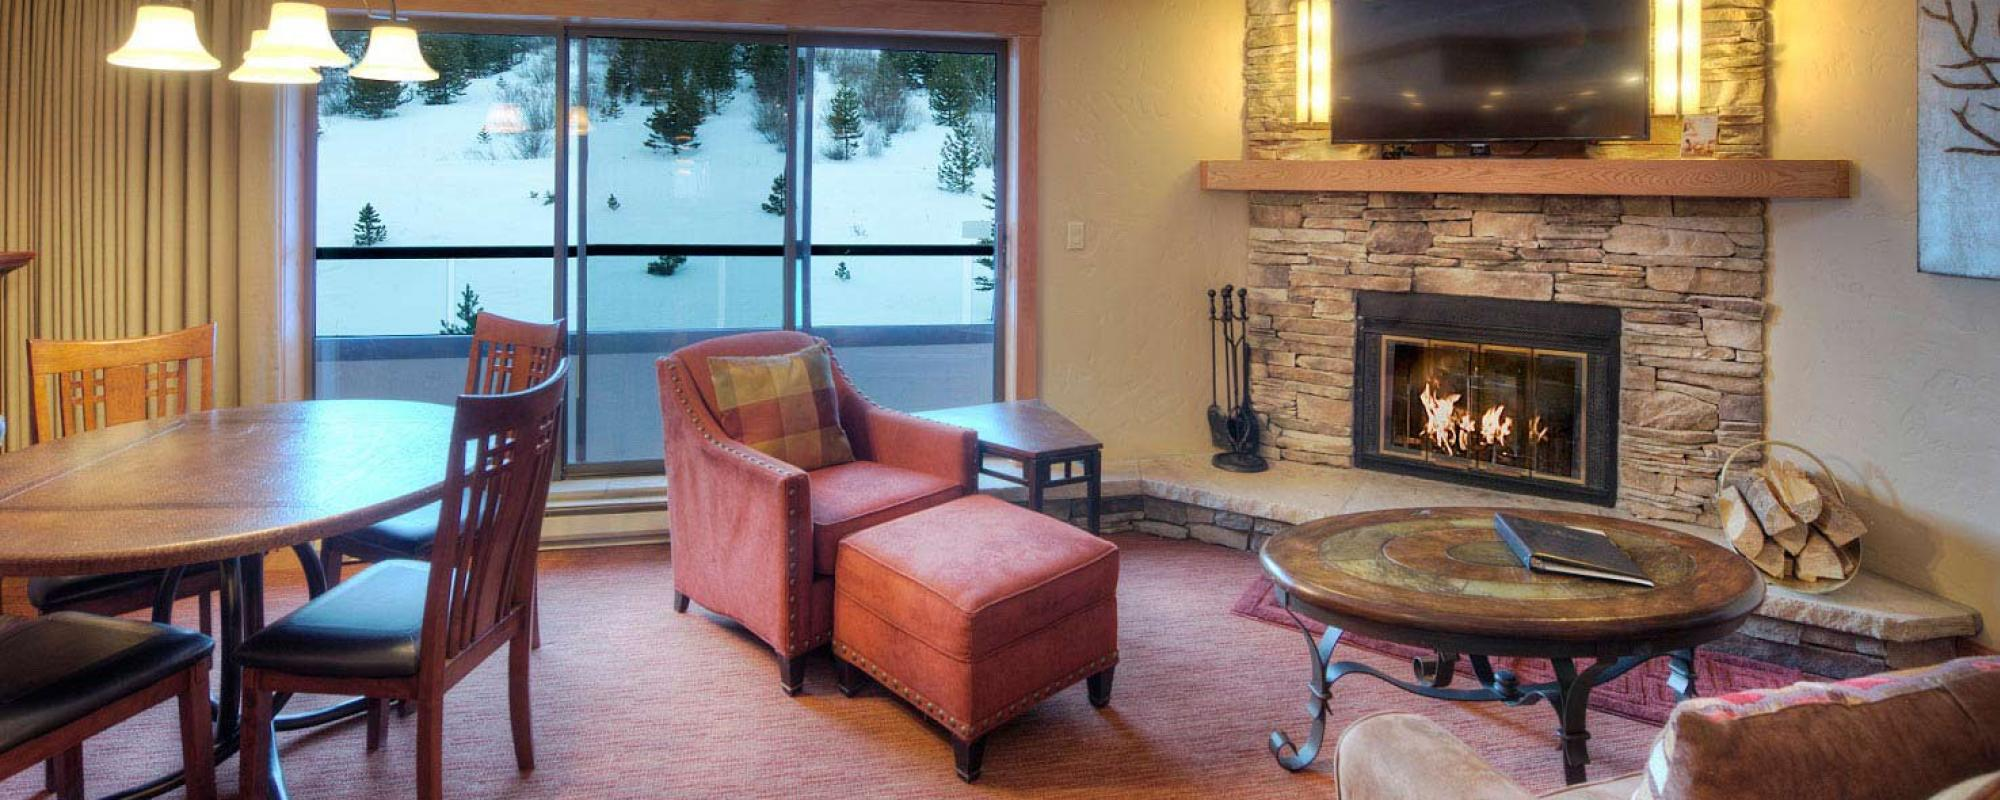 Summit Suite Studio at Beaver Run Resort in Breckenridge